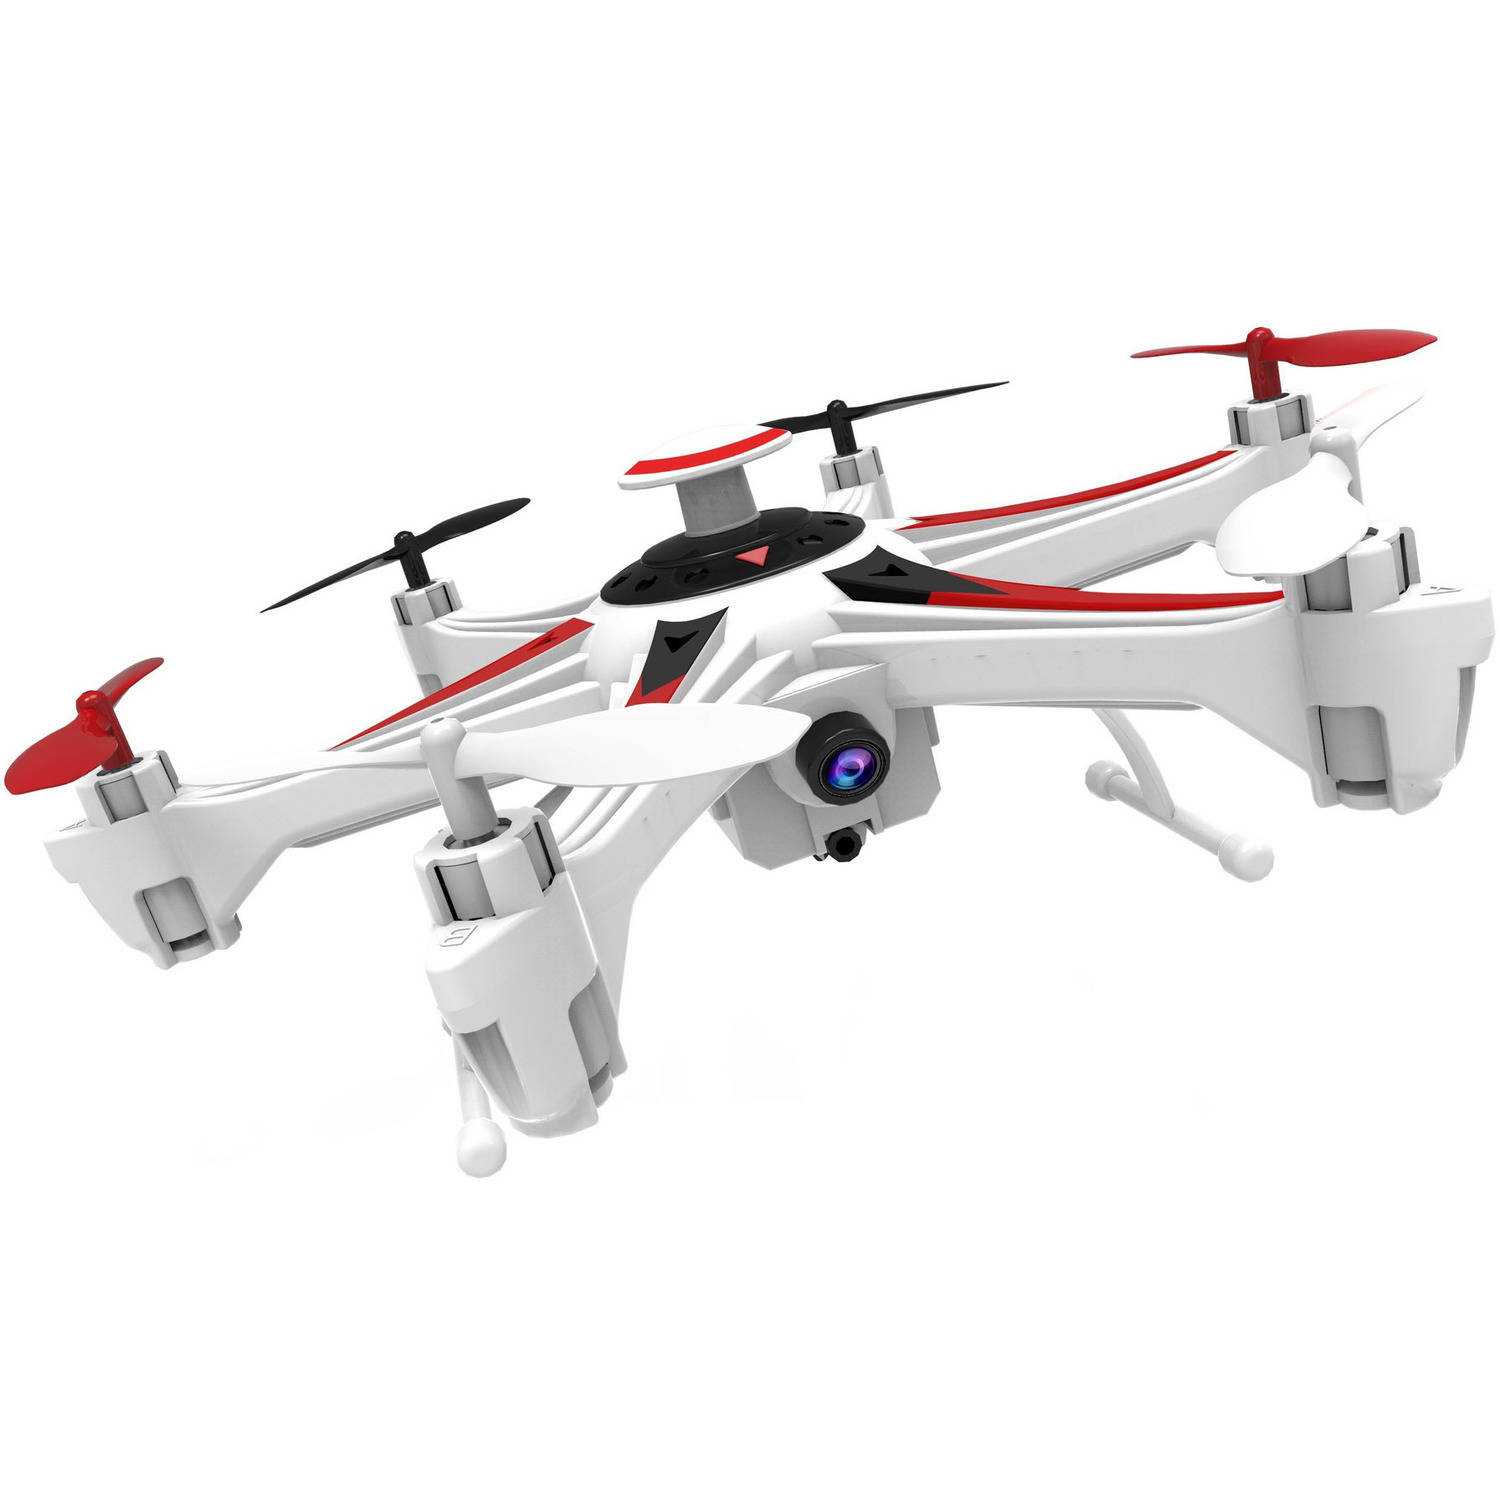 Riviera RC Spinner Wi-Fi Drone with 3D App, White